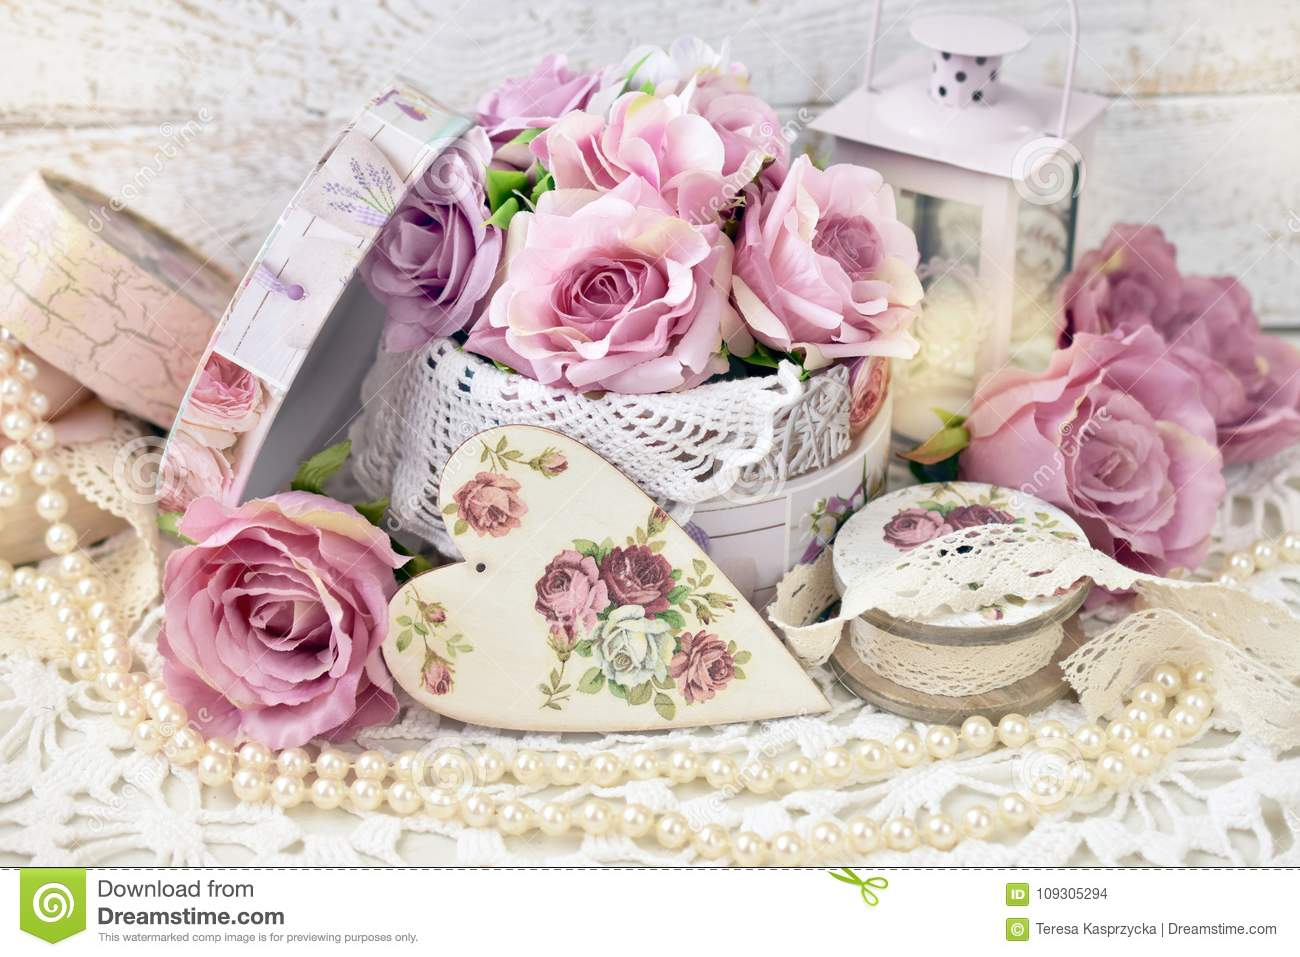 Swell Romantic Love Decoration In Shabby Chic Style For Wedding Or Home Remodeling Inspirations Gresiscottssportslandcom